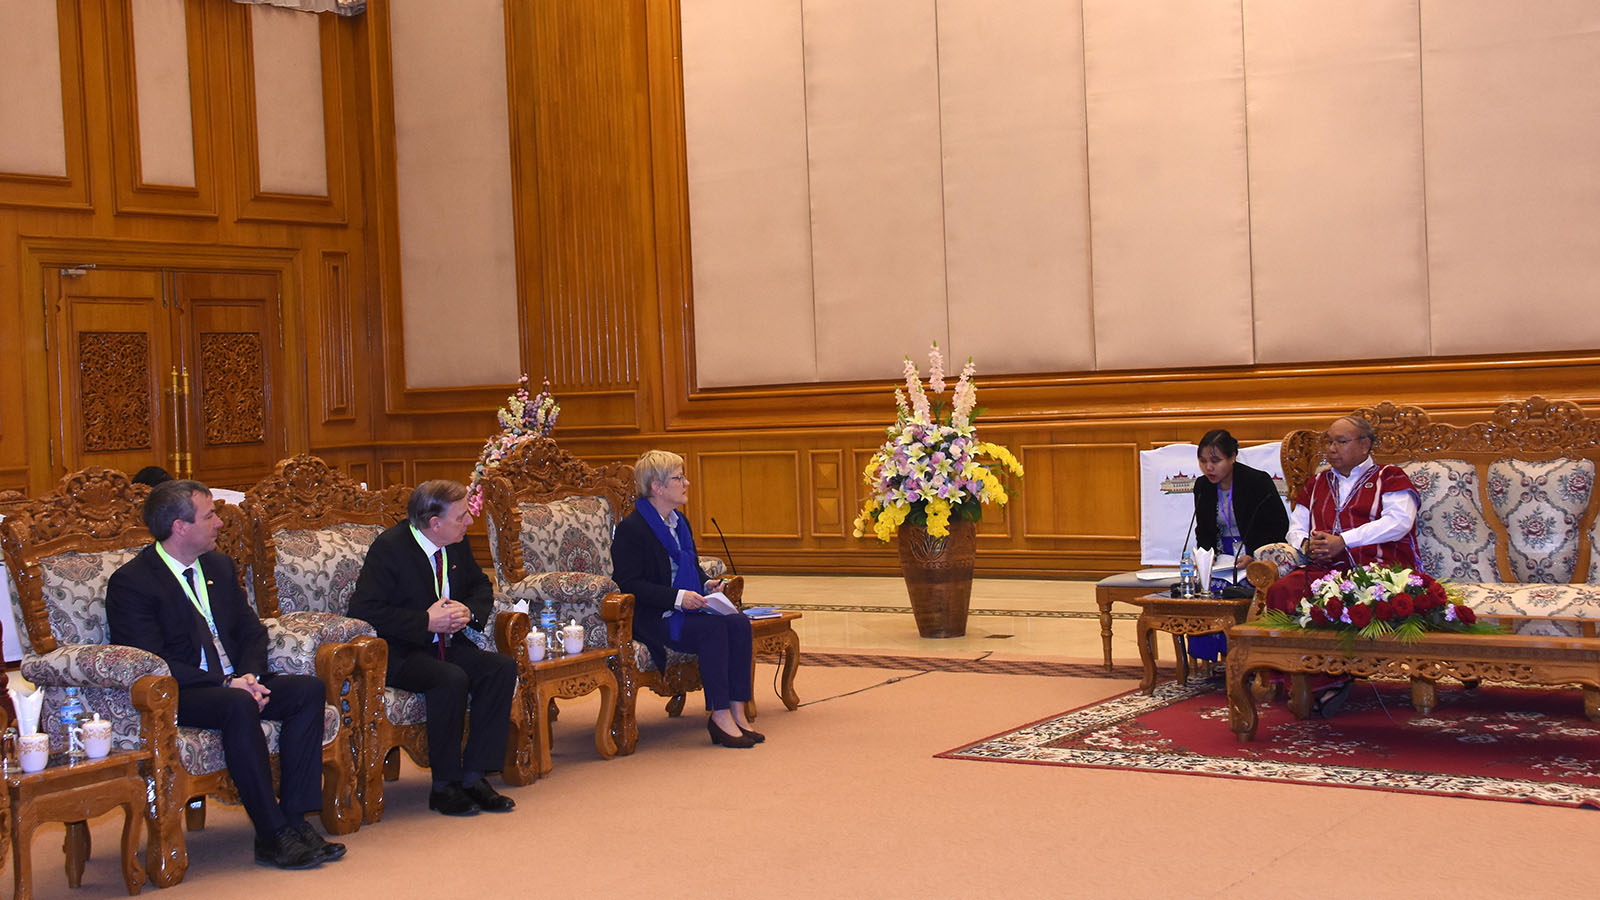 Amyotha Hluttaw Speaker Mahn Win Khaing Than meets with Chair Mrs. Renate Kunast of the German-ASEAN Parliamentary Friendship Group in Nay Pyi Taw yesterday.Photo: MNA